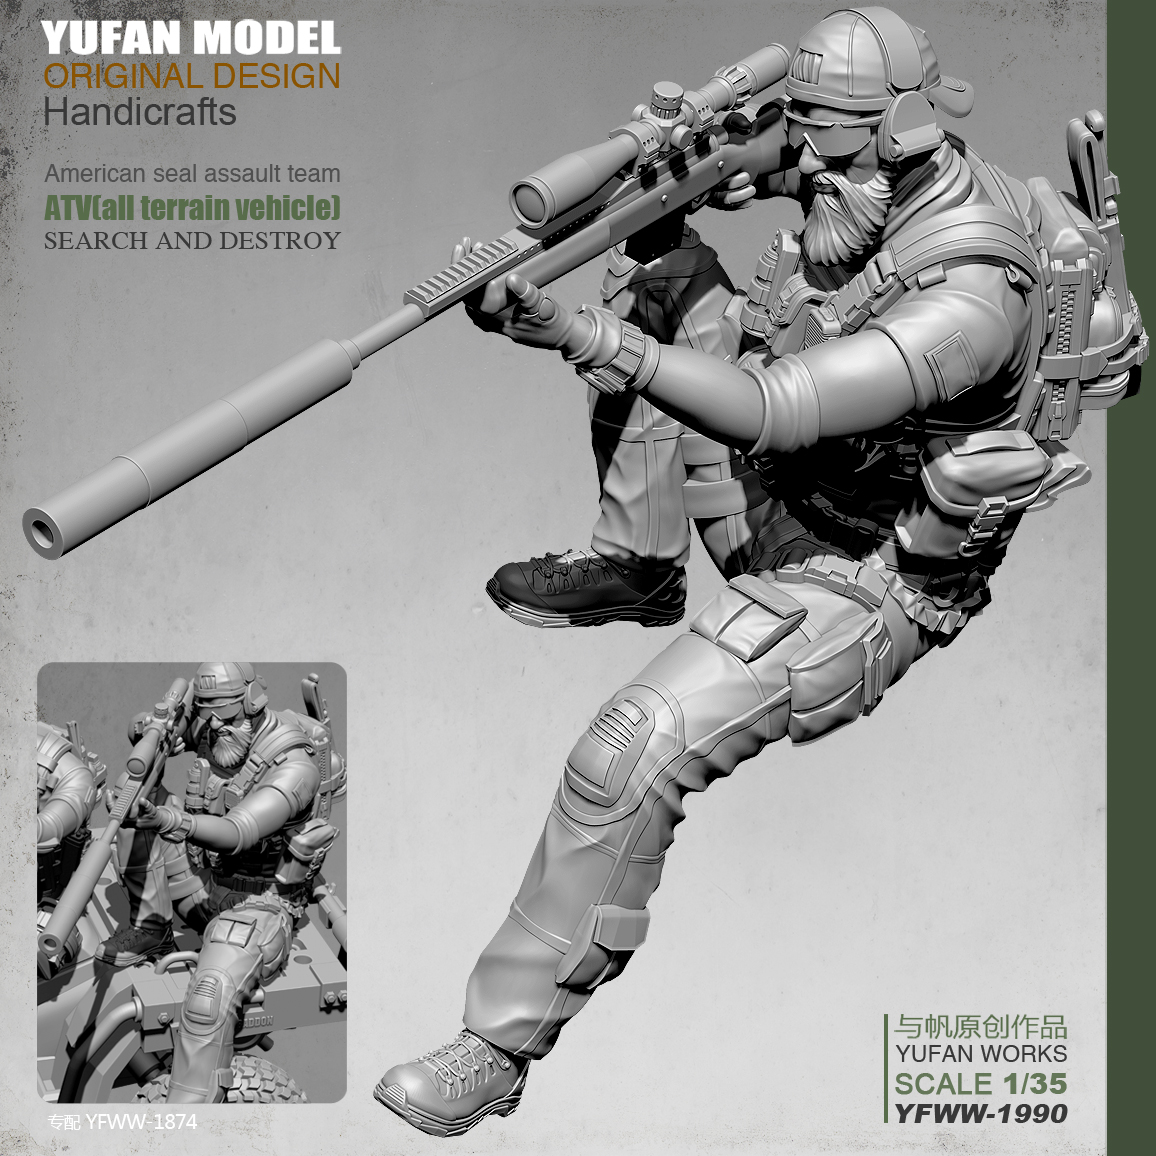 Yufan Model 1/35 Resin Figure Us Sniper Resin Soldier Unmounted Yfww-1990